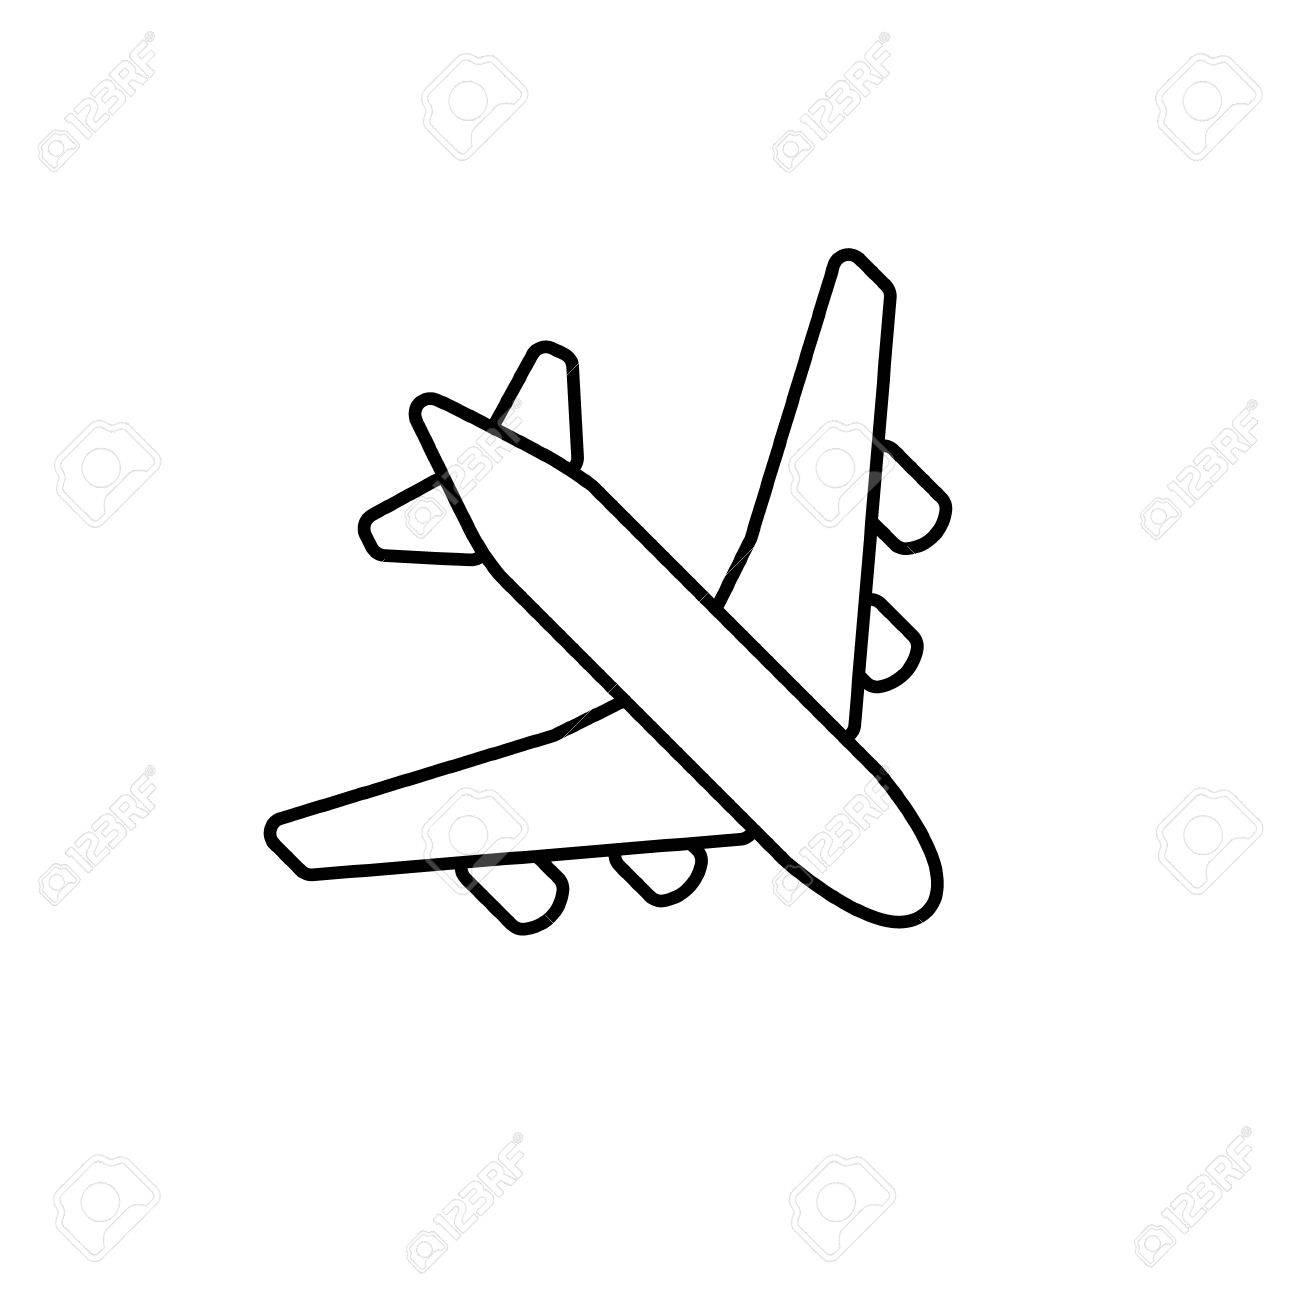 how to draw jet plane plane drawing at paintingvalleycom explore collection to plane draw jet how